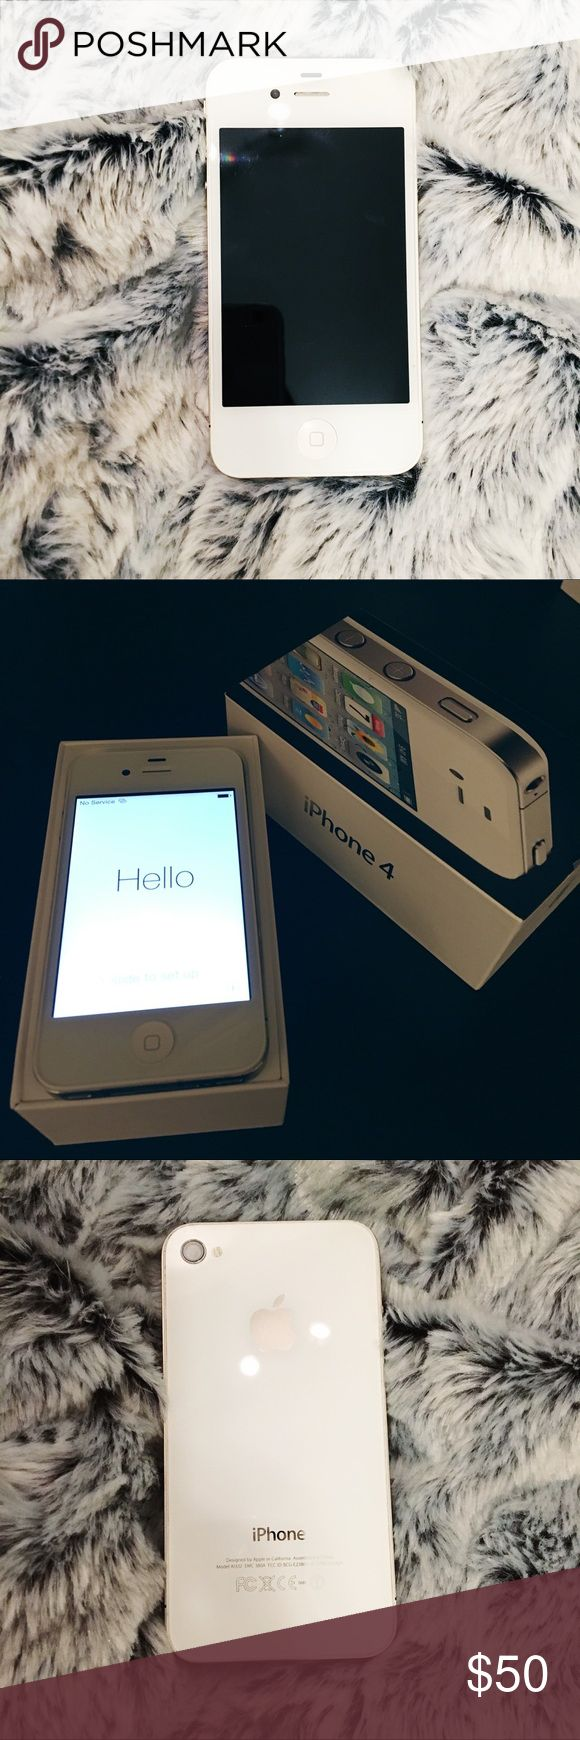 iPhone 4 16GB White iPhone 4 16GB White not unlocked. AT&T compatible. Awesome condition. Had a case on the back and a cover on the front. No major scratches or dings at all. I will send you the charge chord but you will eventually want to buy a new one bc it's fraying. Make me an offer 😘 Apple Other